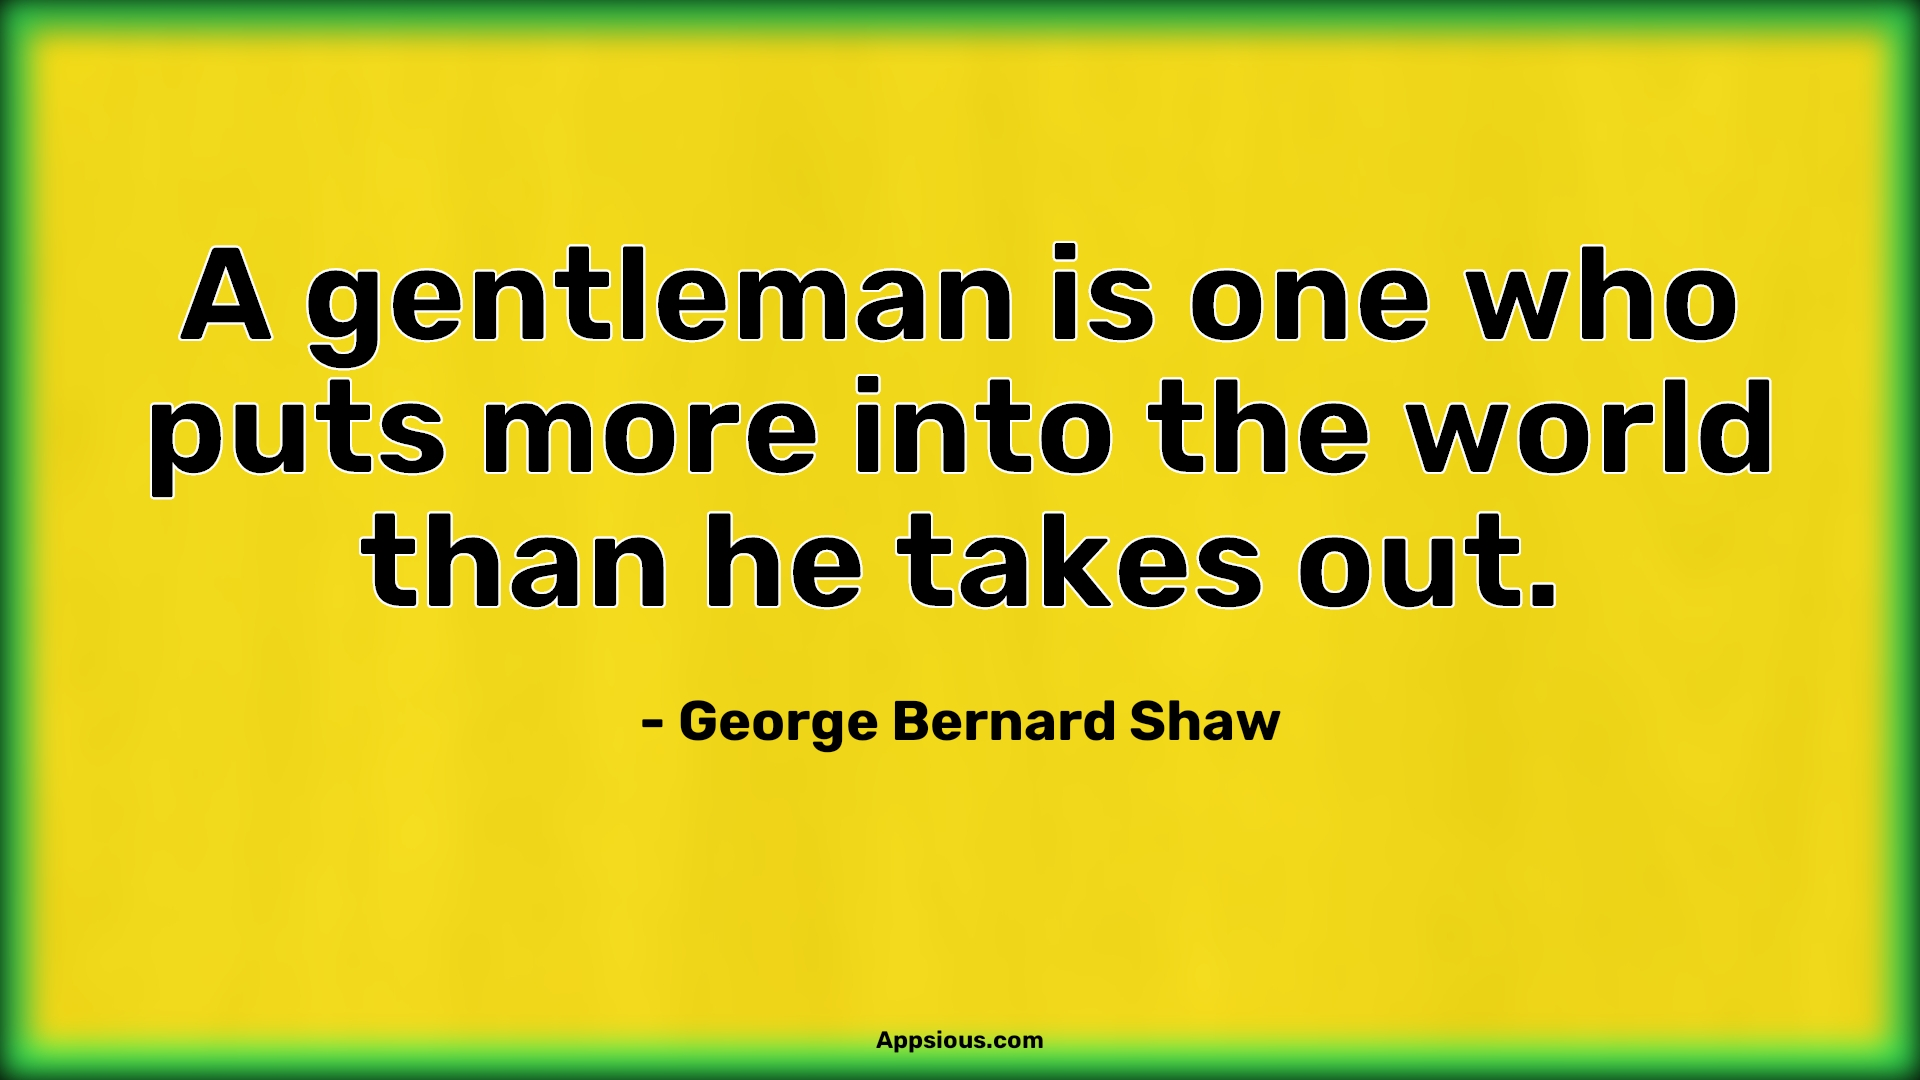 A gentleman is one who puts more into the world than he takes out.